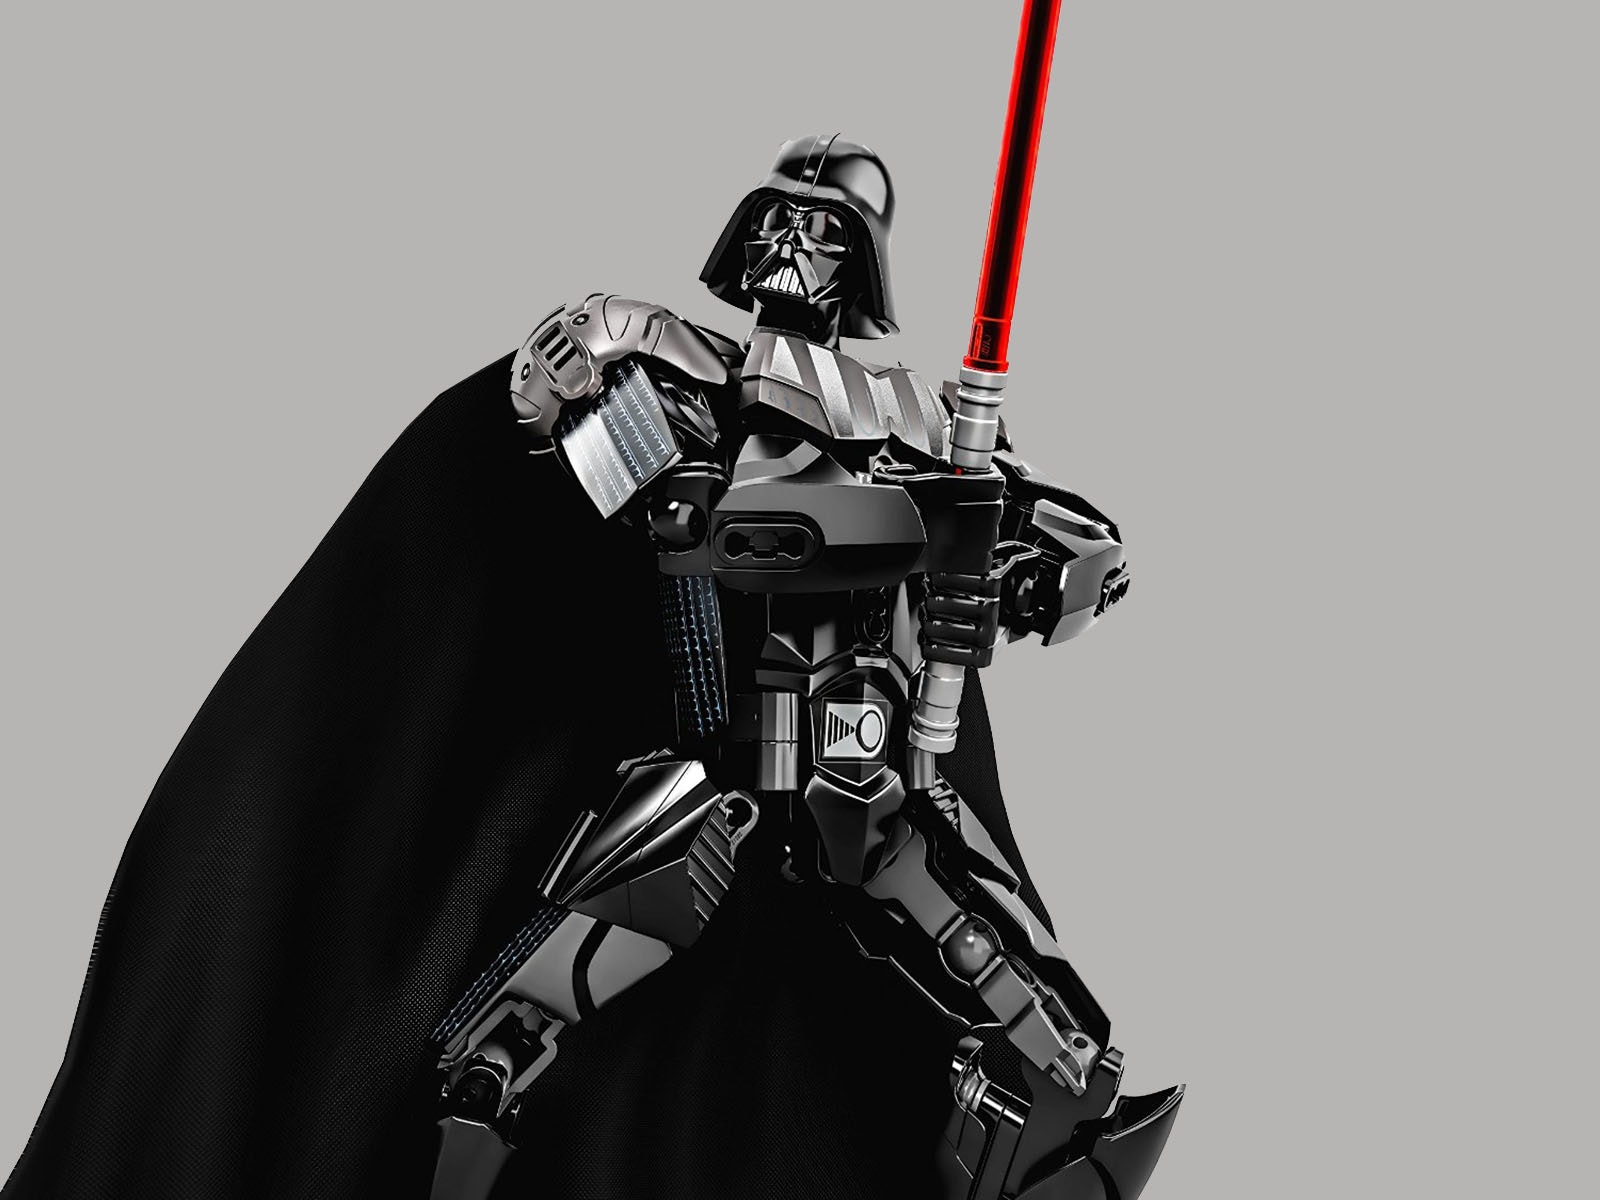 A build-your-own Darth Vader